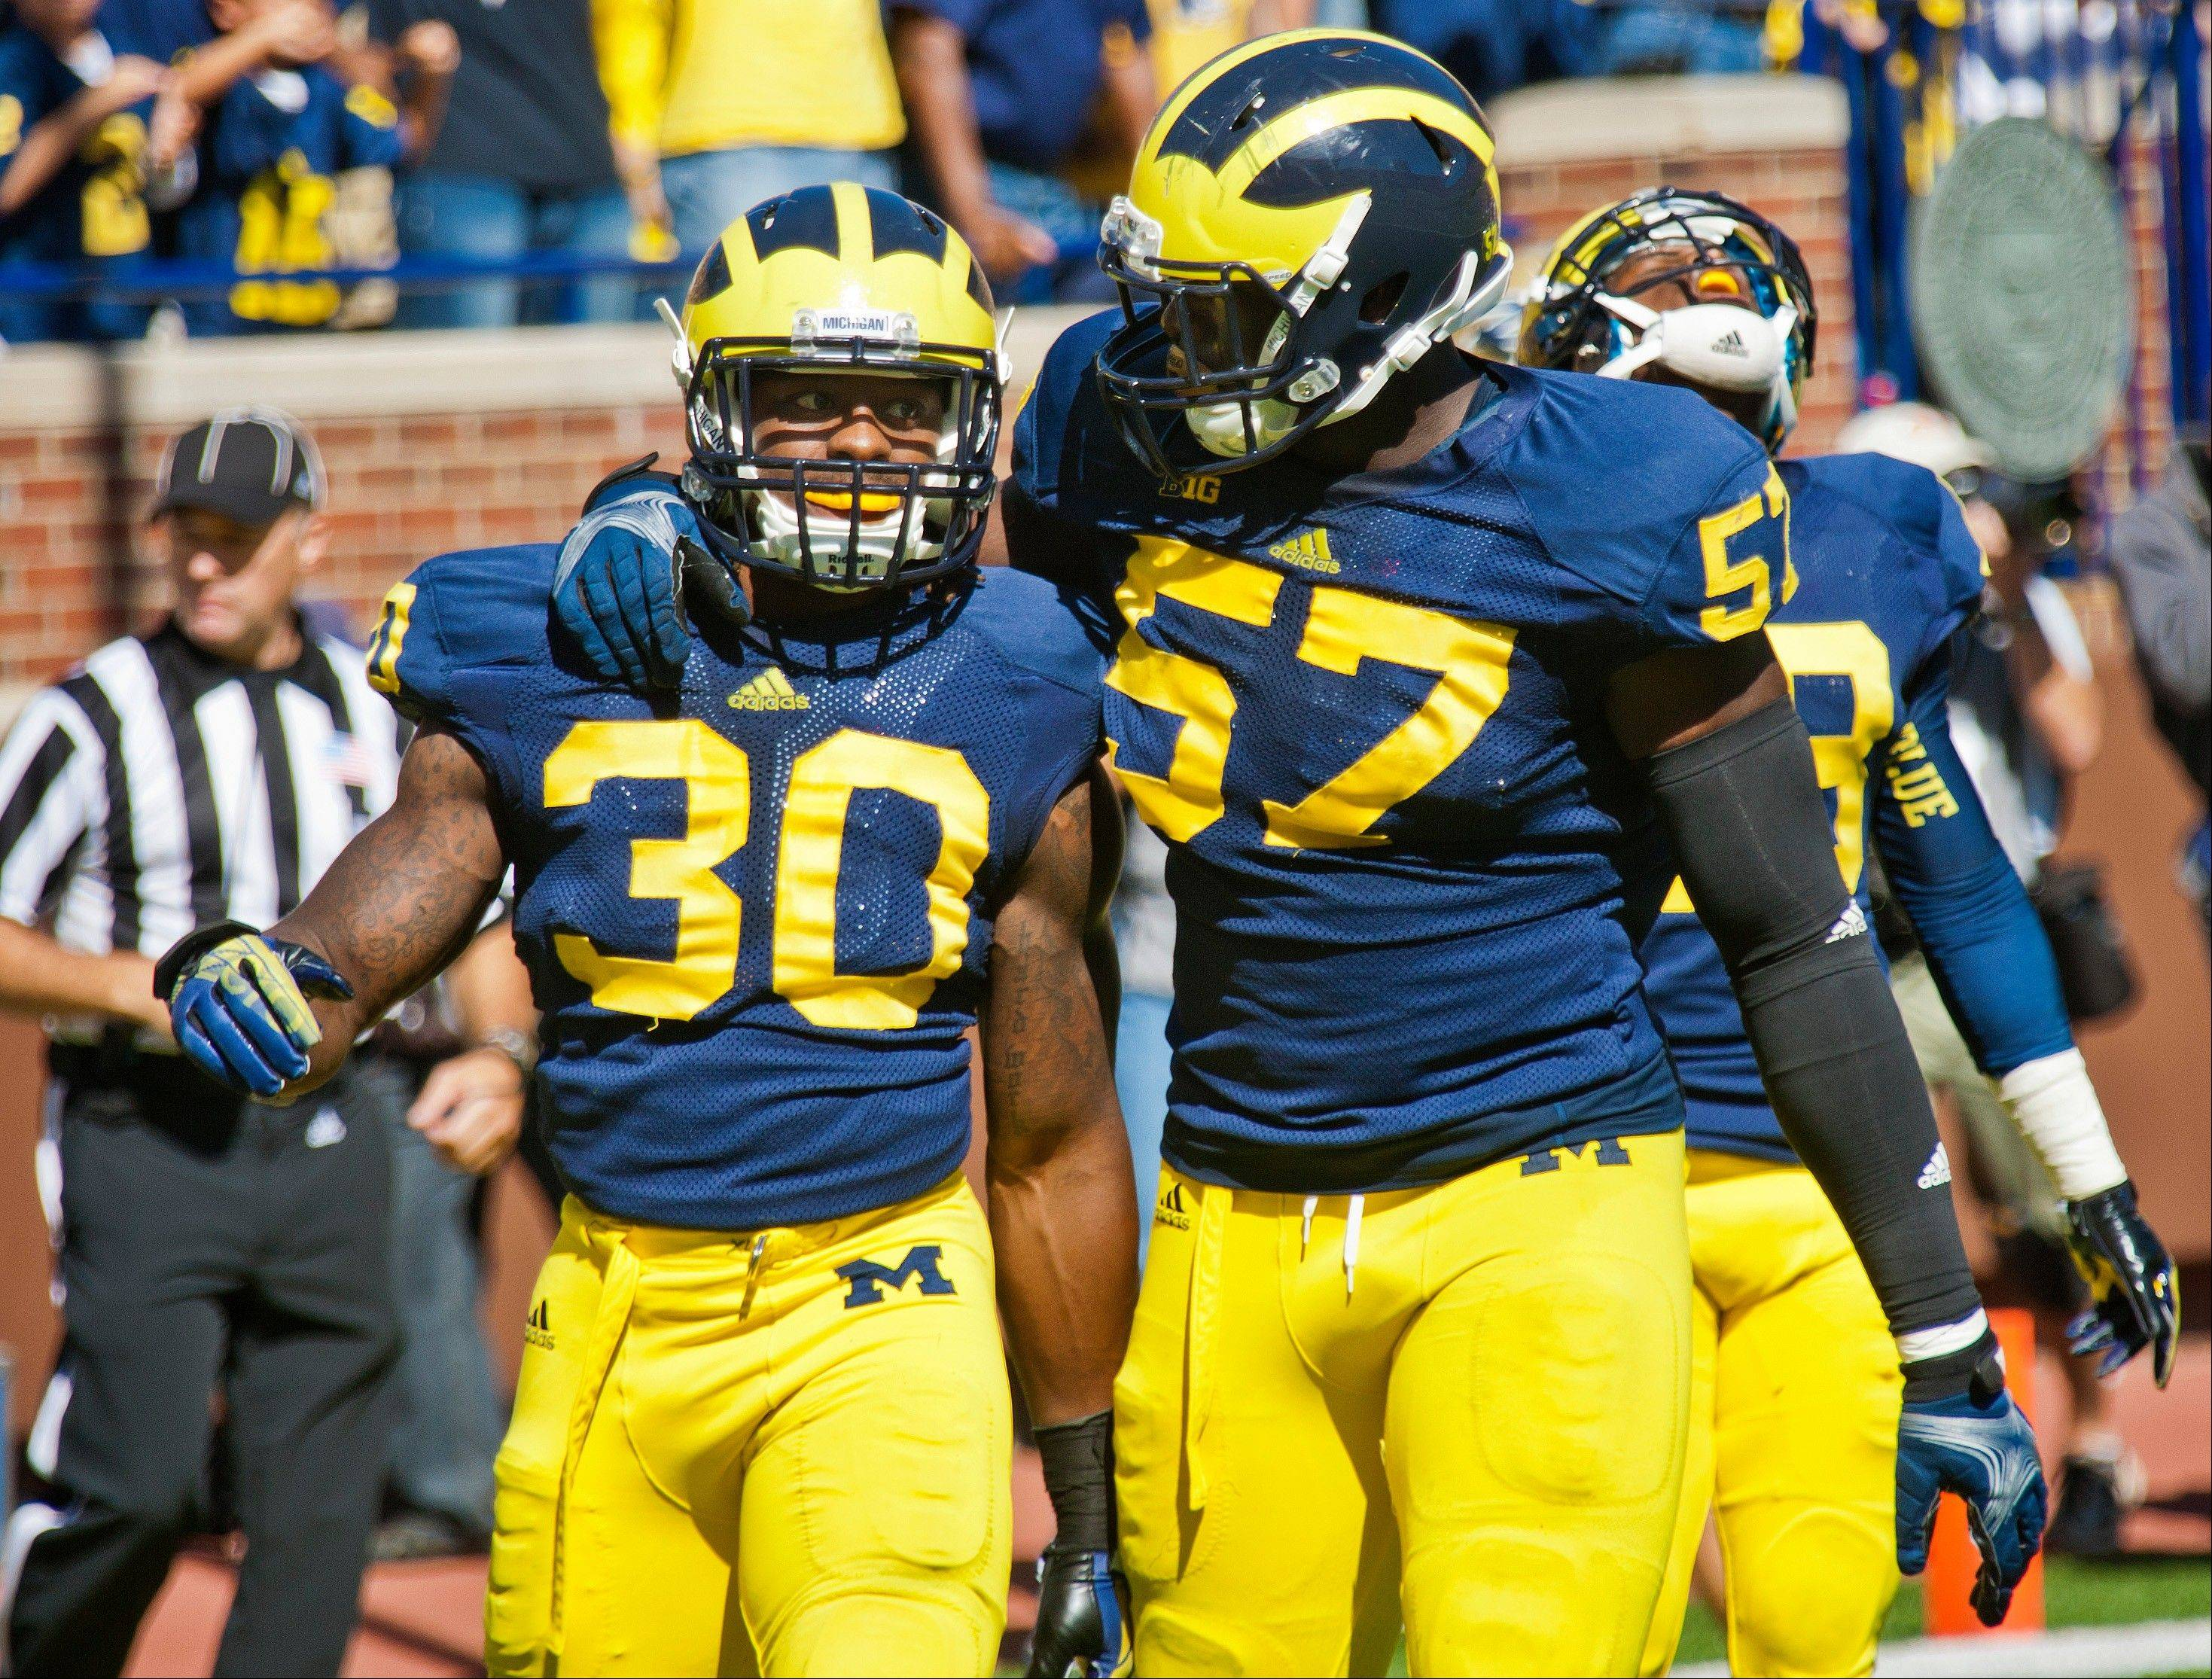 Michigan safety Thomas Gordon (30) and offensive lineman Patrick Kugler (57) celebrate after stopping Akron from scoring in the final seconds of last Saturday's game in Ann Arbor, Mich.